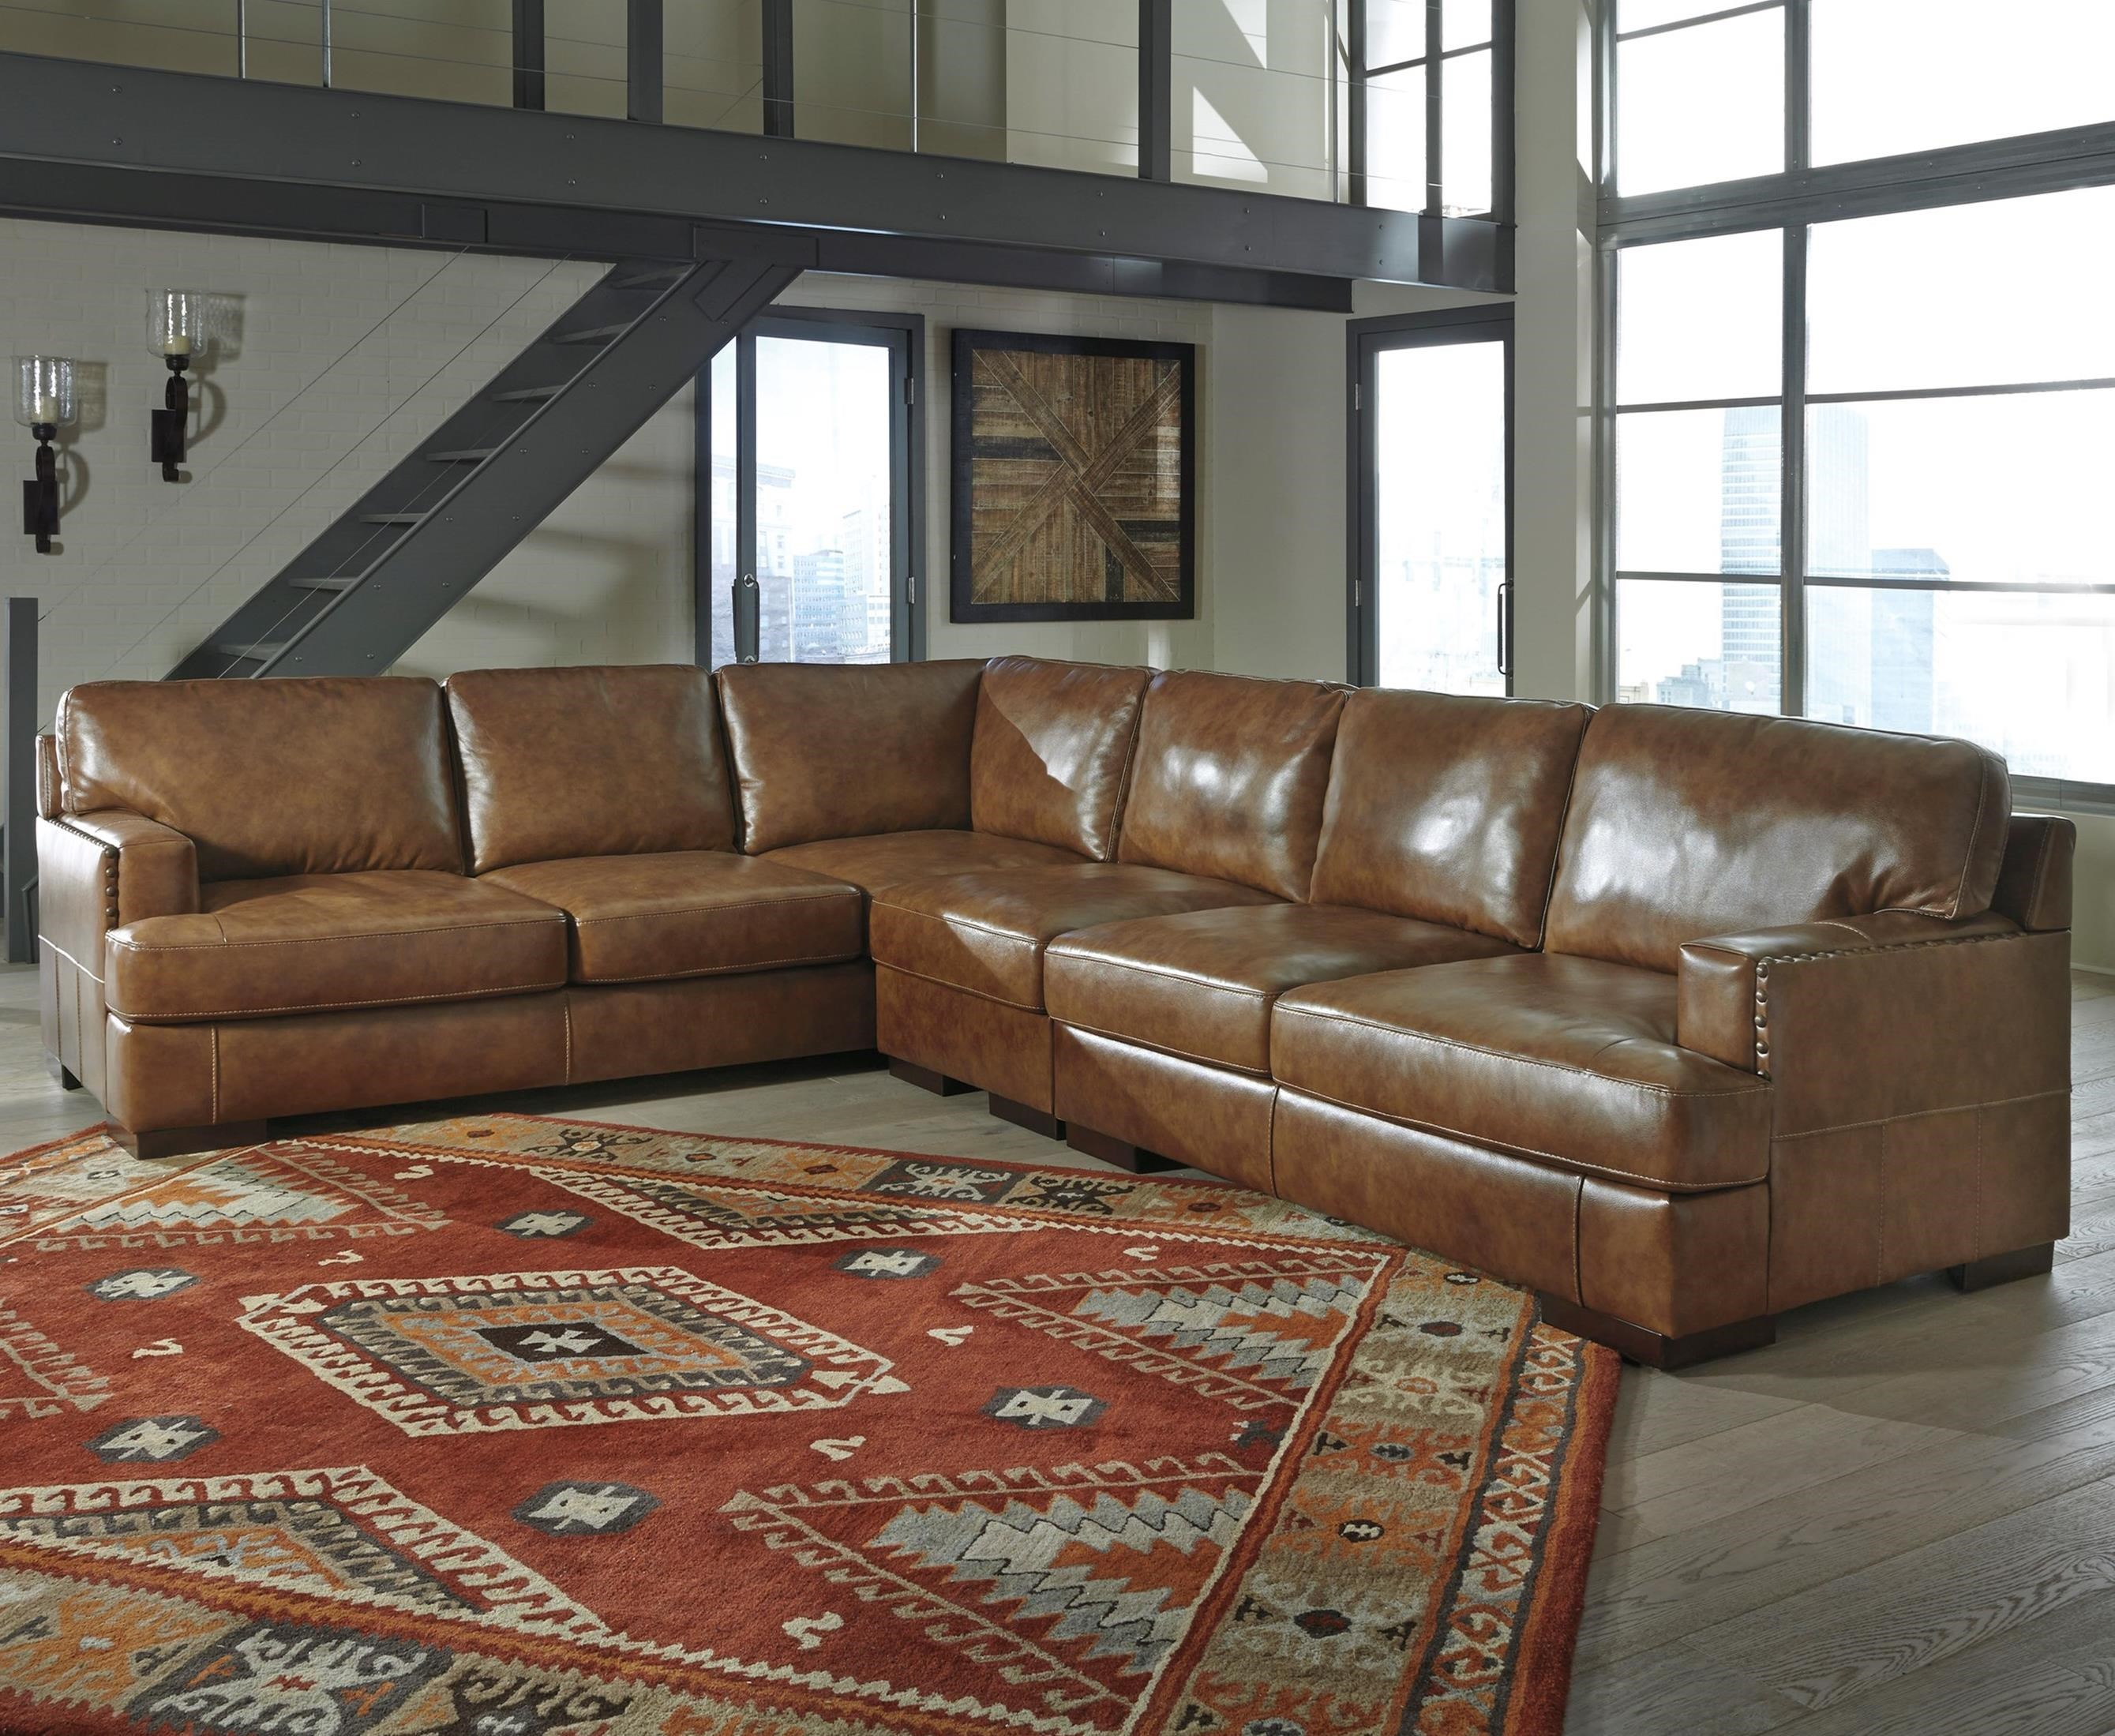 3 piece sectional urban 3piece sectional polyfill image for Affordable furniture 3 piece sectional in jesse cocoa